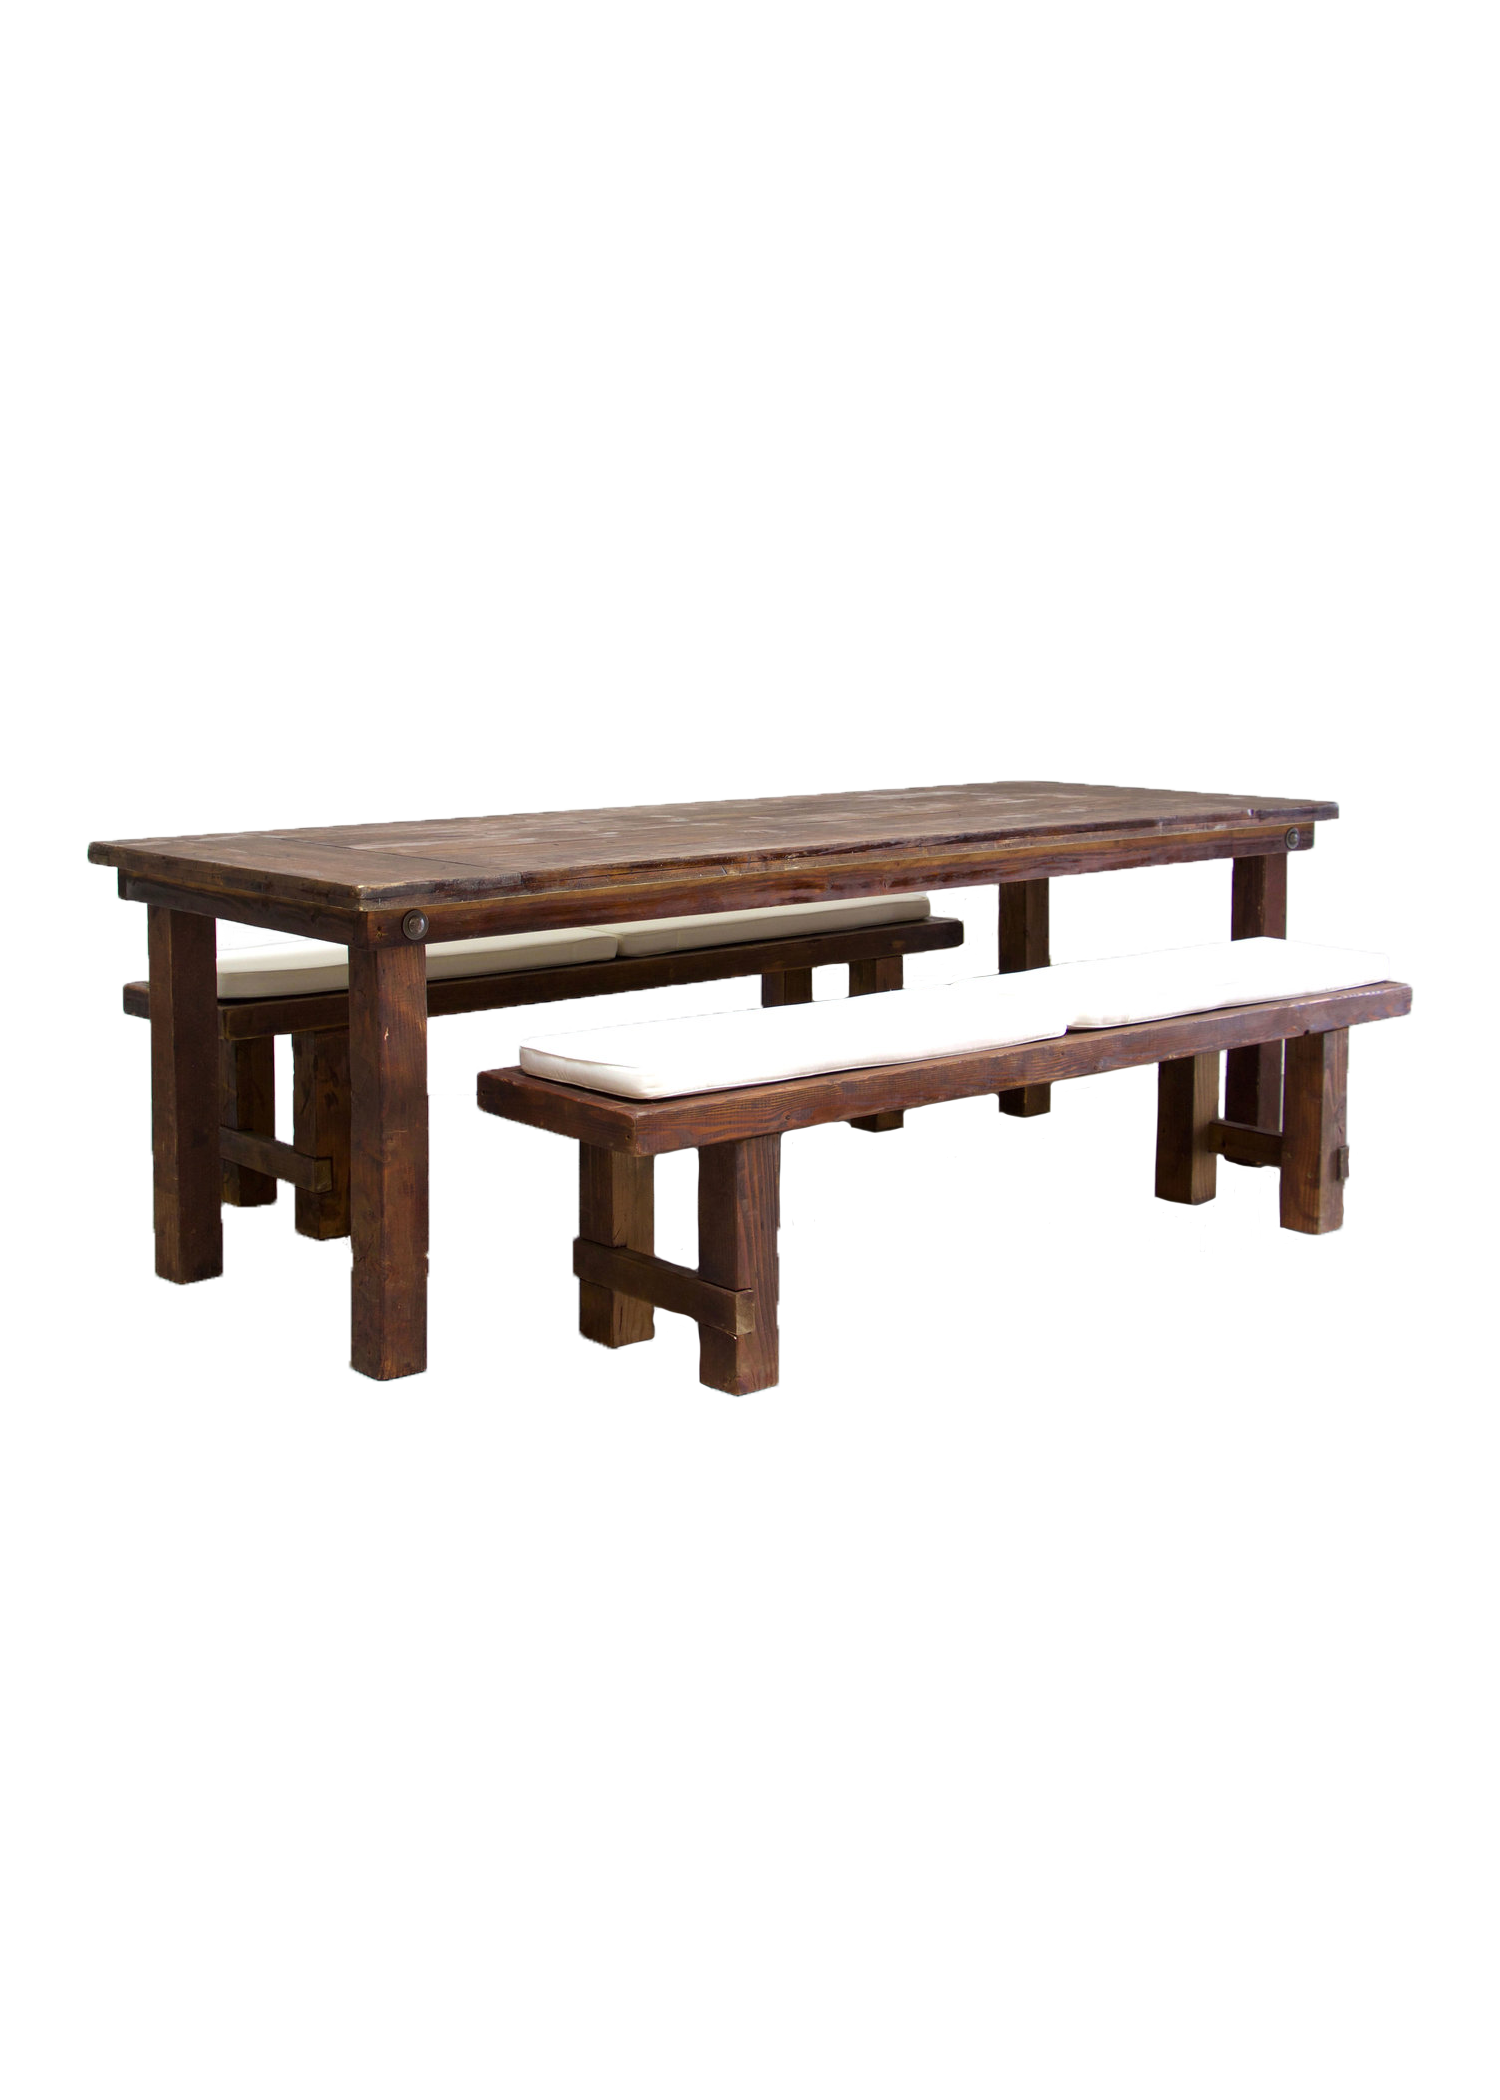 Mahogany Farm Table with 2 Long Benches $145